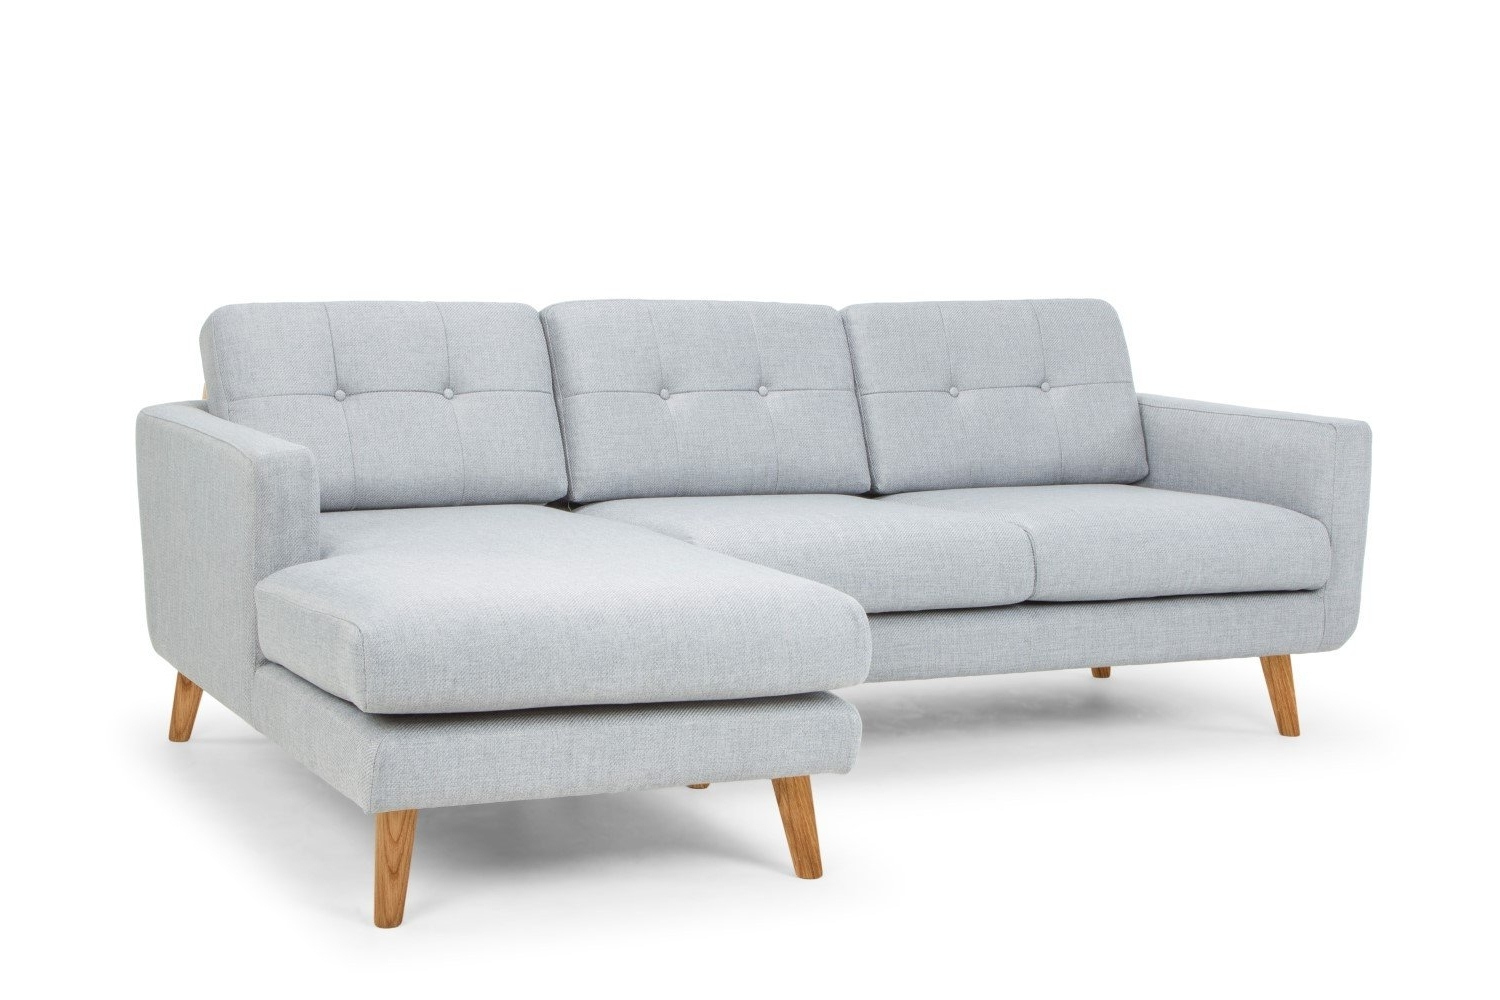 Ashley Furniture Reviews Claire 3 Piece Chaise Sectional Lazy Boy Inside 2018 Aspen Leather Sofas (View 17 of 20)